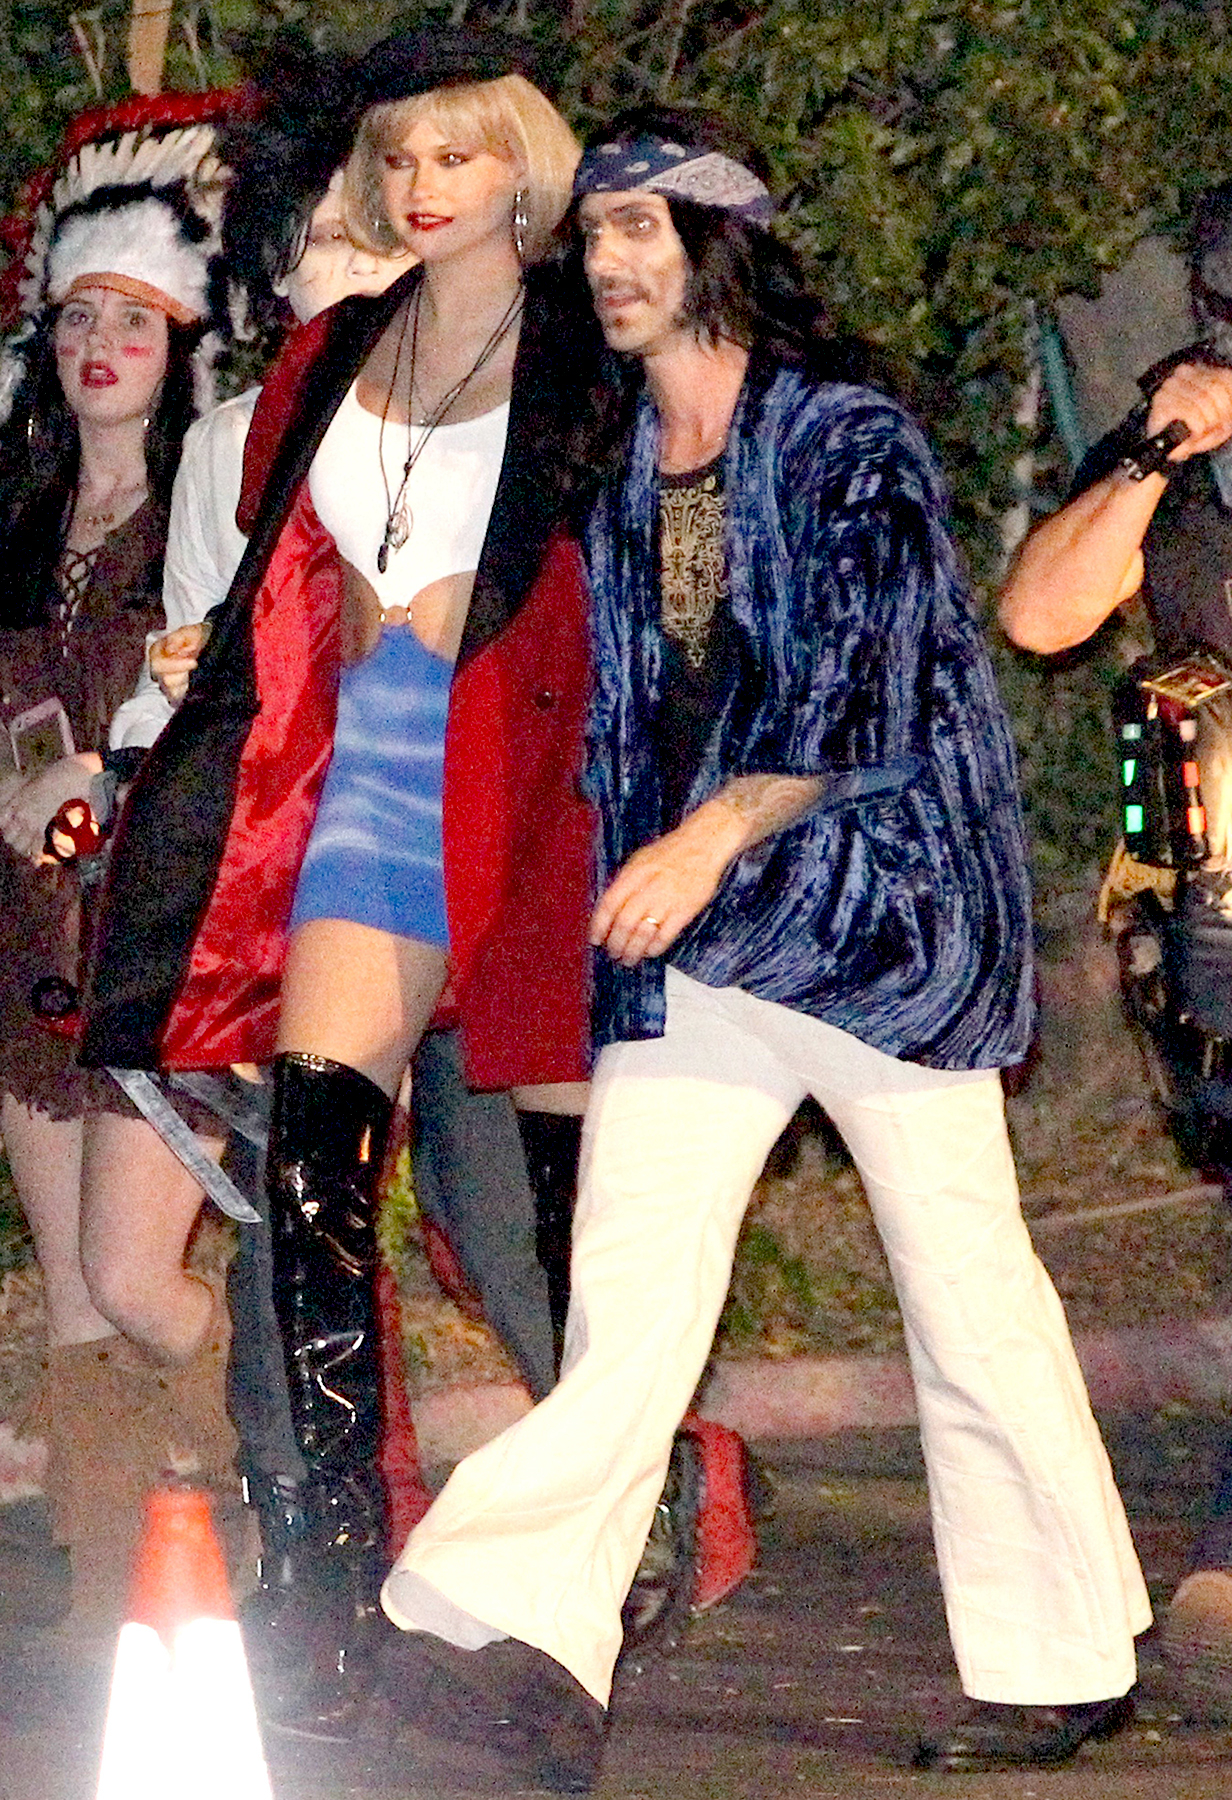 Adam Levine and Behati Prinsloo arrived at the Maroon 5 annual Halloween party Adam Levine dressed as Led Zeppelin and Behati dressed as Julia Roberts in pretty woman.